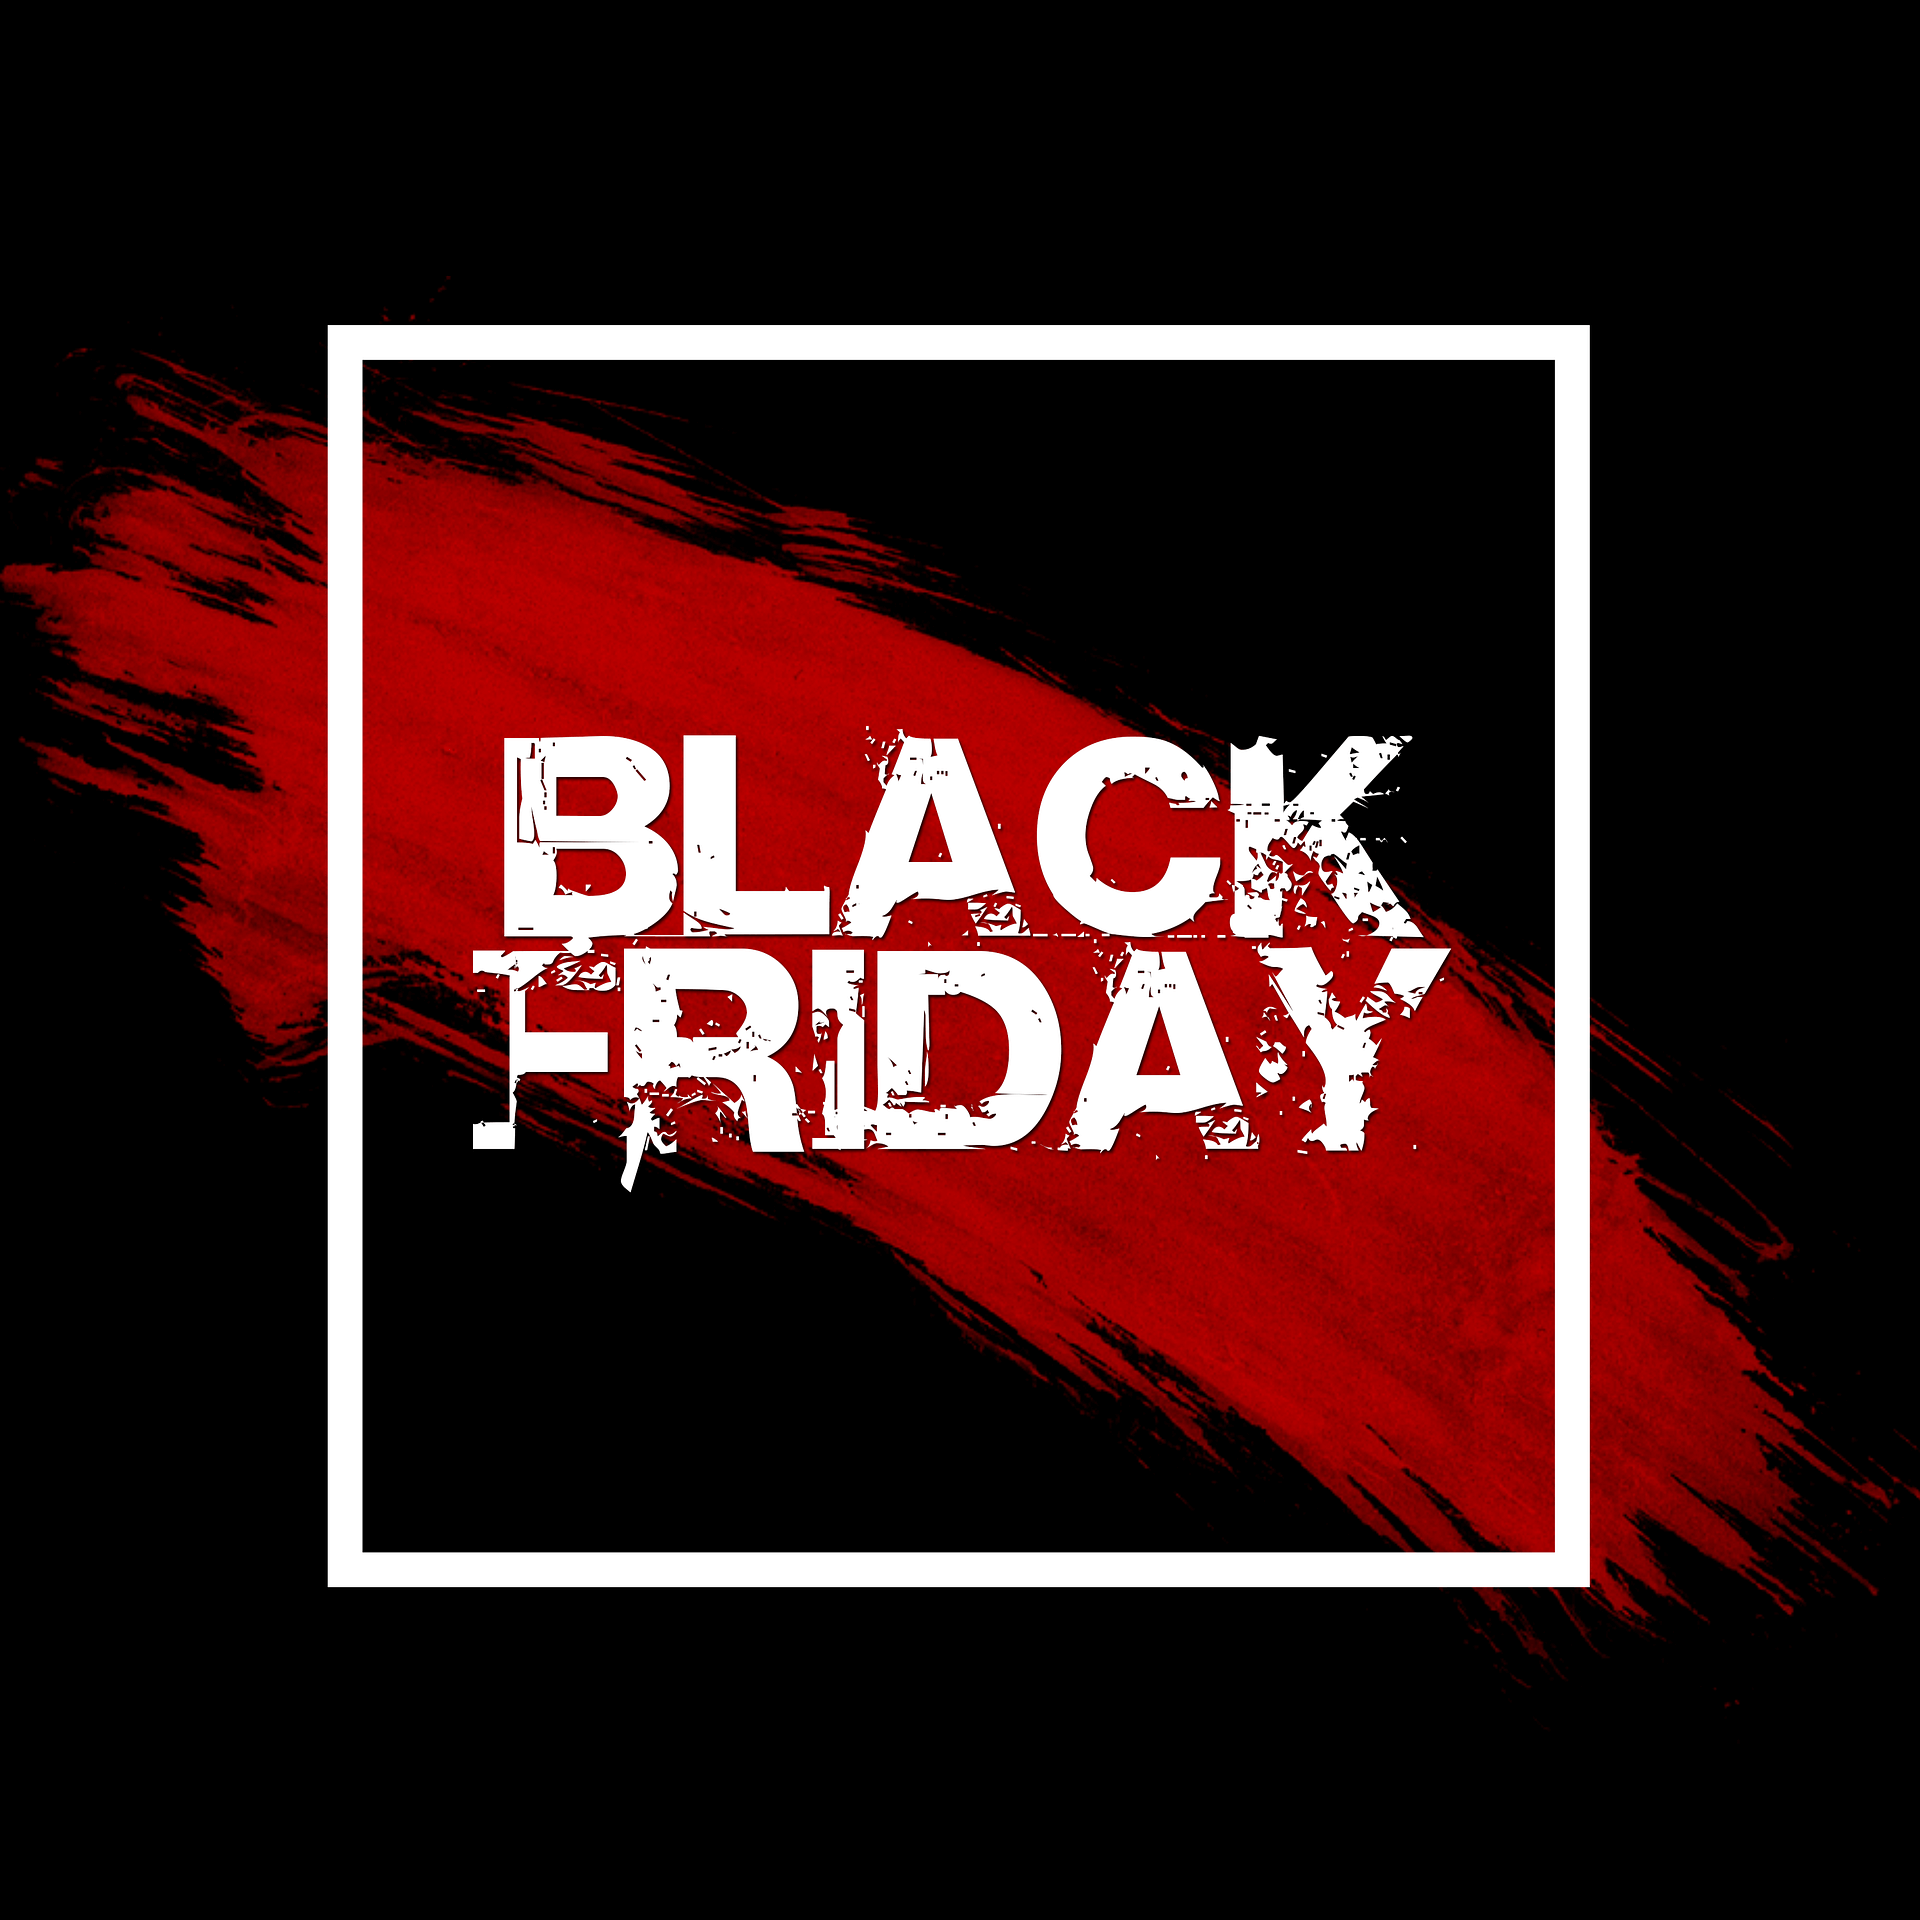 black friday tilbud shop butik shoppetur